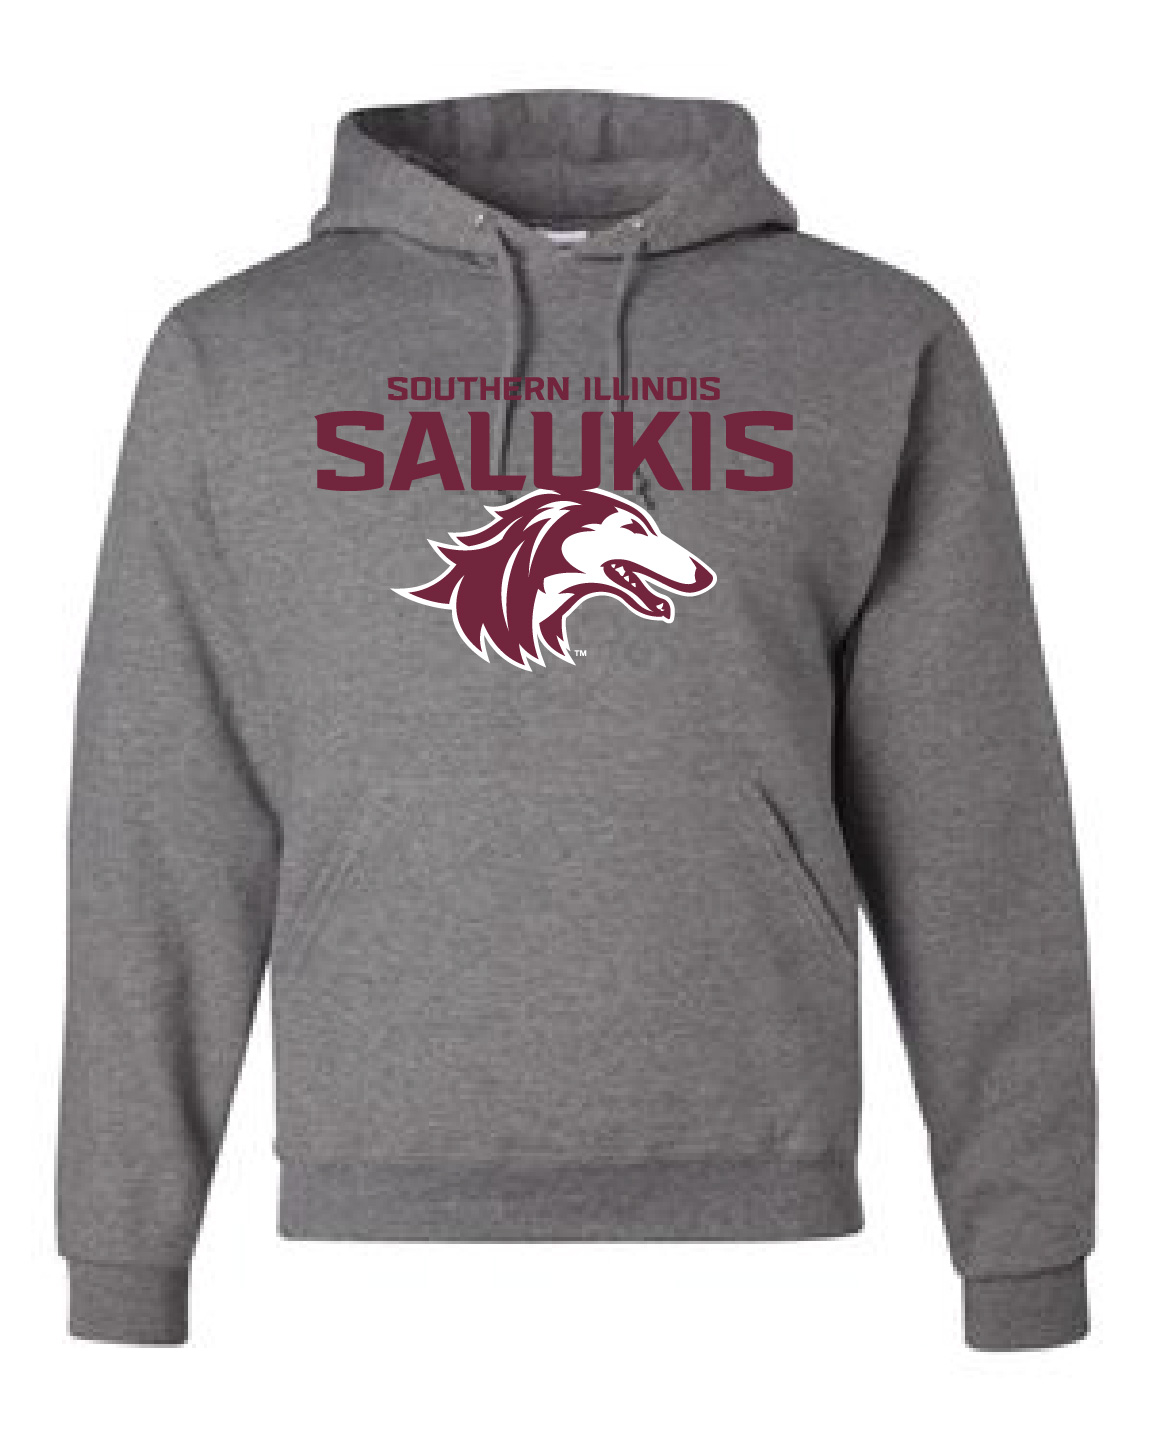 Image for the NEW 2019 ATHLETIC LOGO SOUTHERN ILLINOIS SALUKIS HOOD product